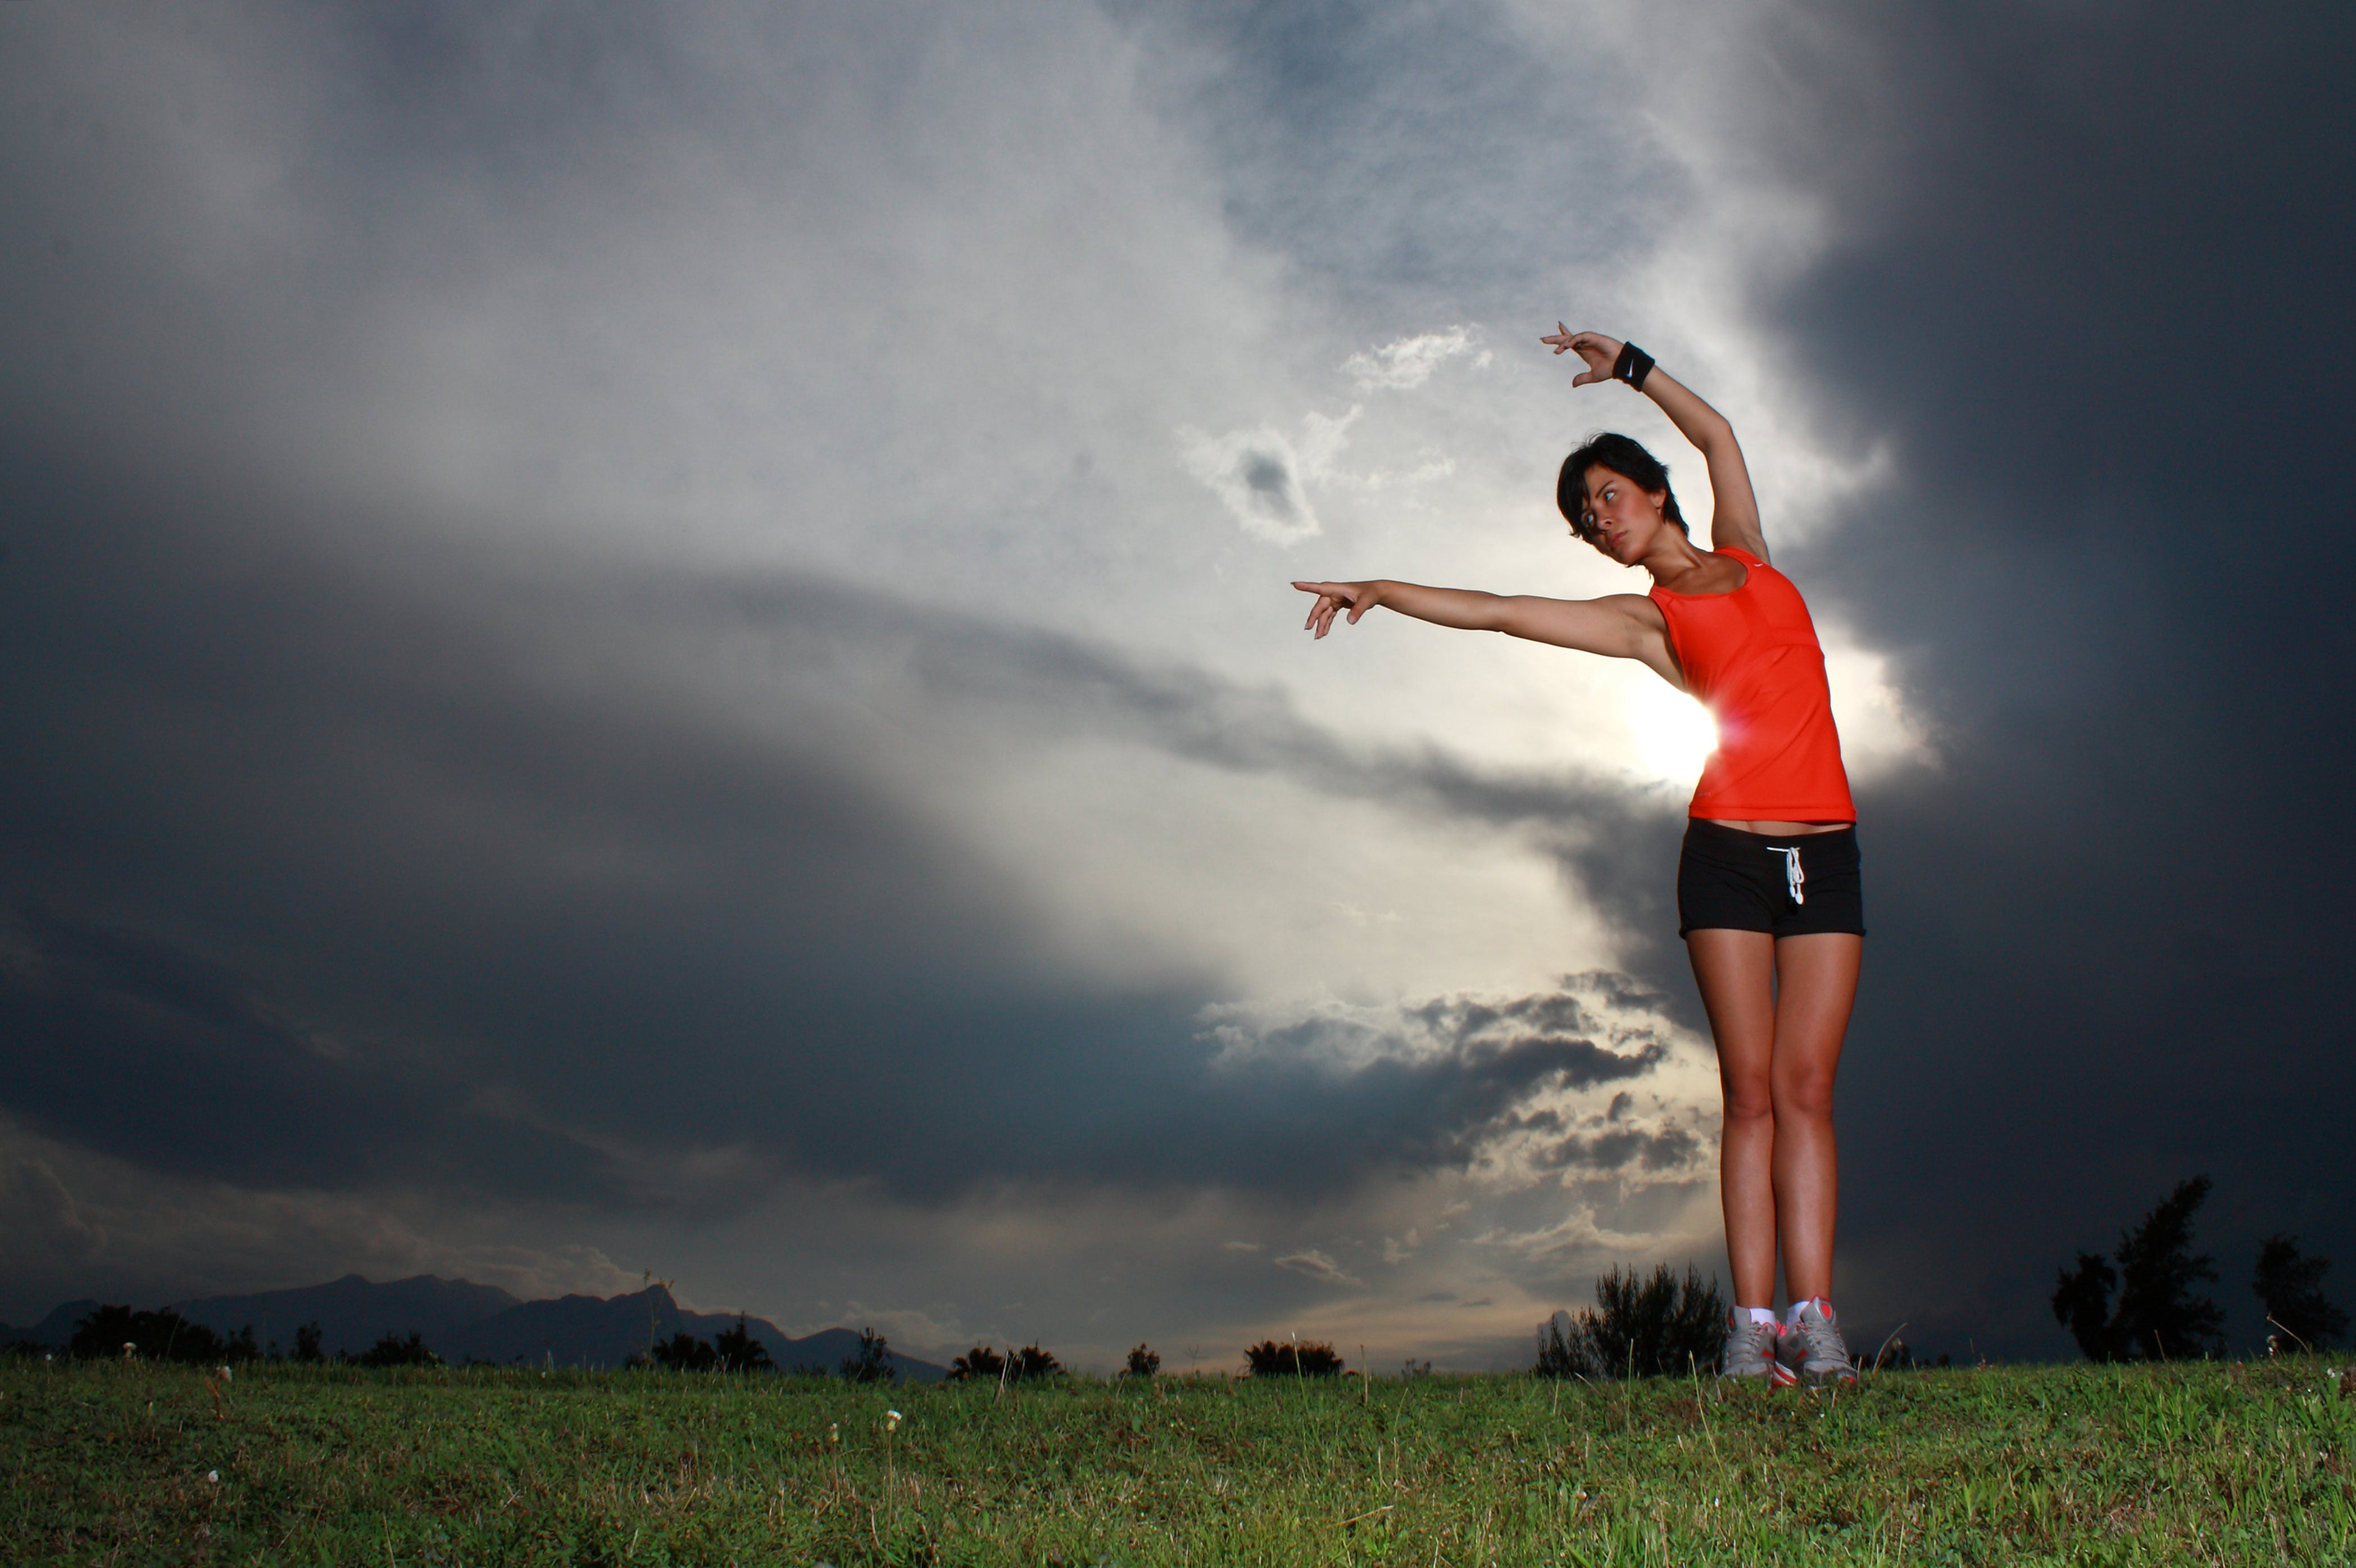 Woman Flexing Arms on Grassy Land